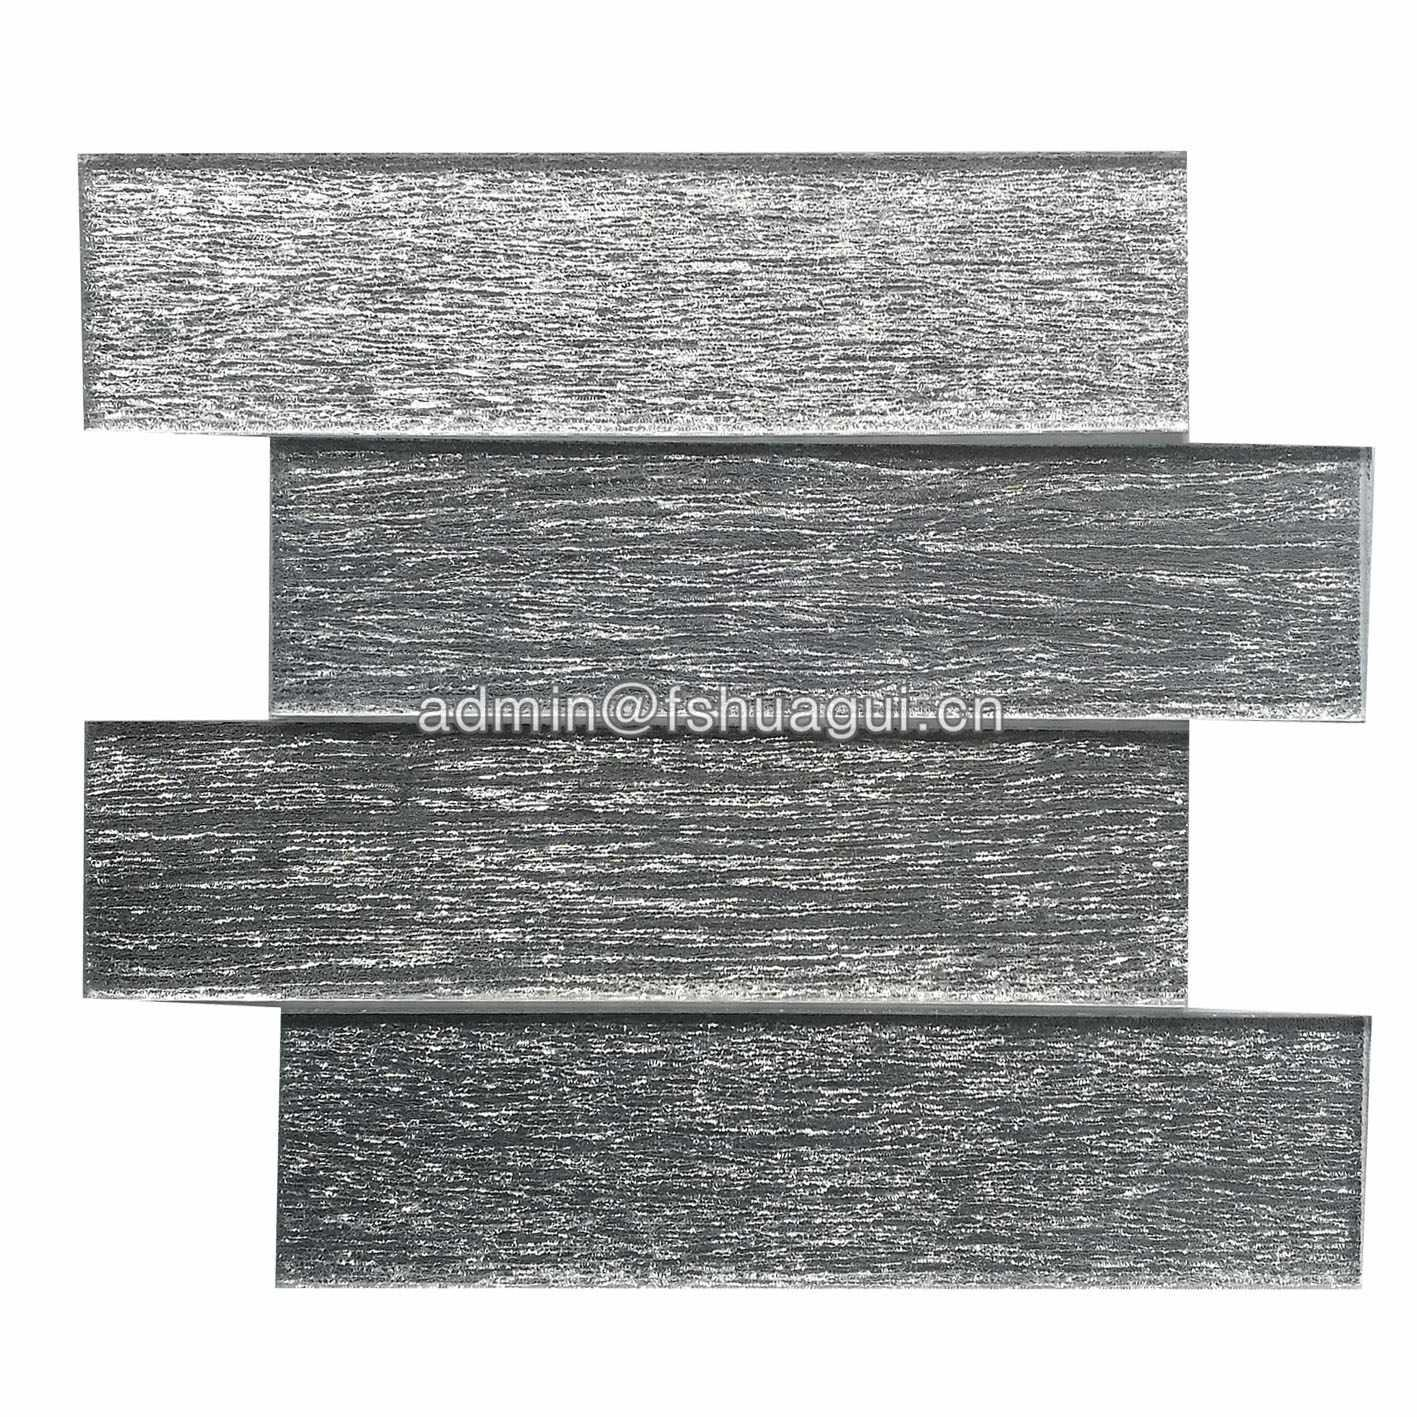 Newest Design Silver Subway Brick Glass Mosaic Wall Tile HG-GTS012